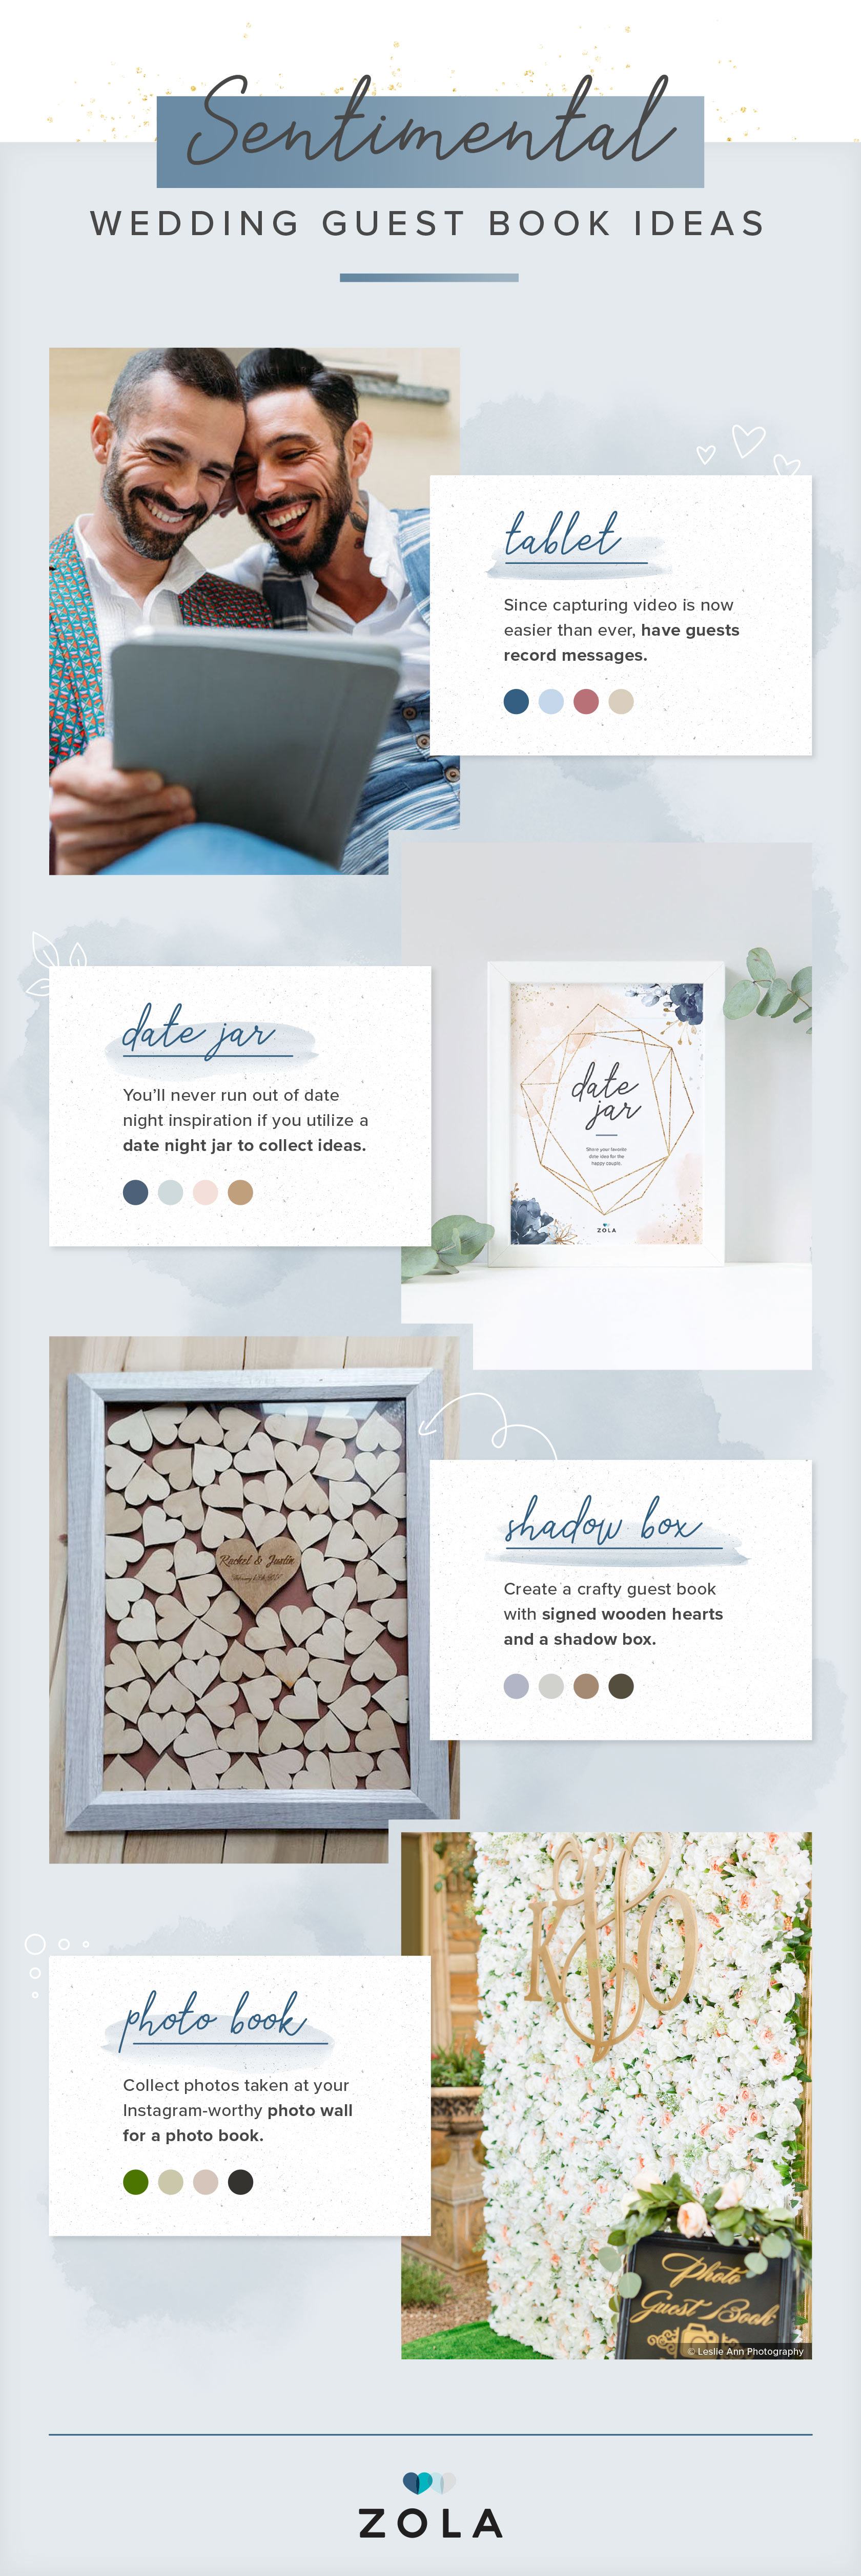 52 Unique Wedding Guest Book Ideas You Ll Want To Bookmark Zola Expert Wedding Advice